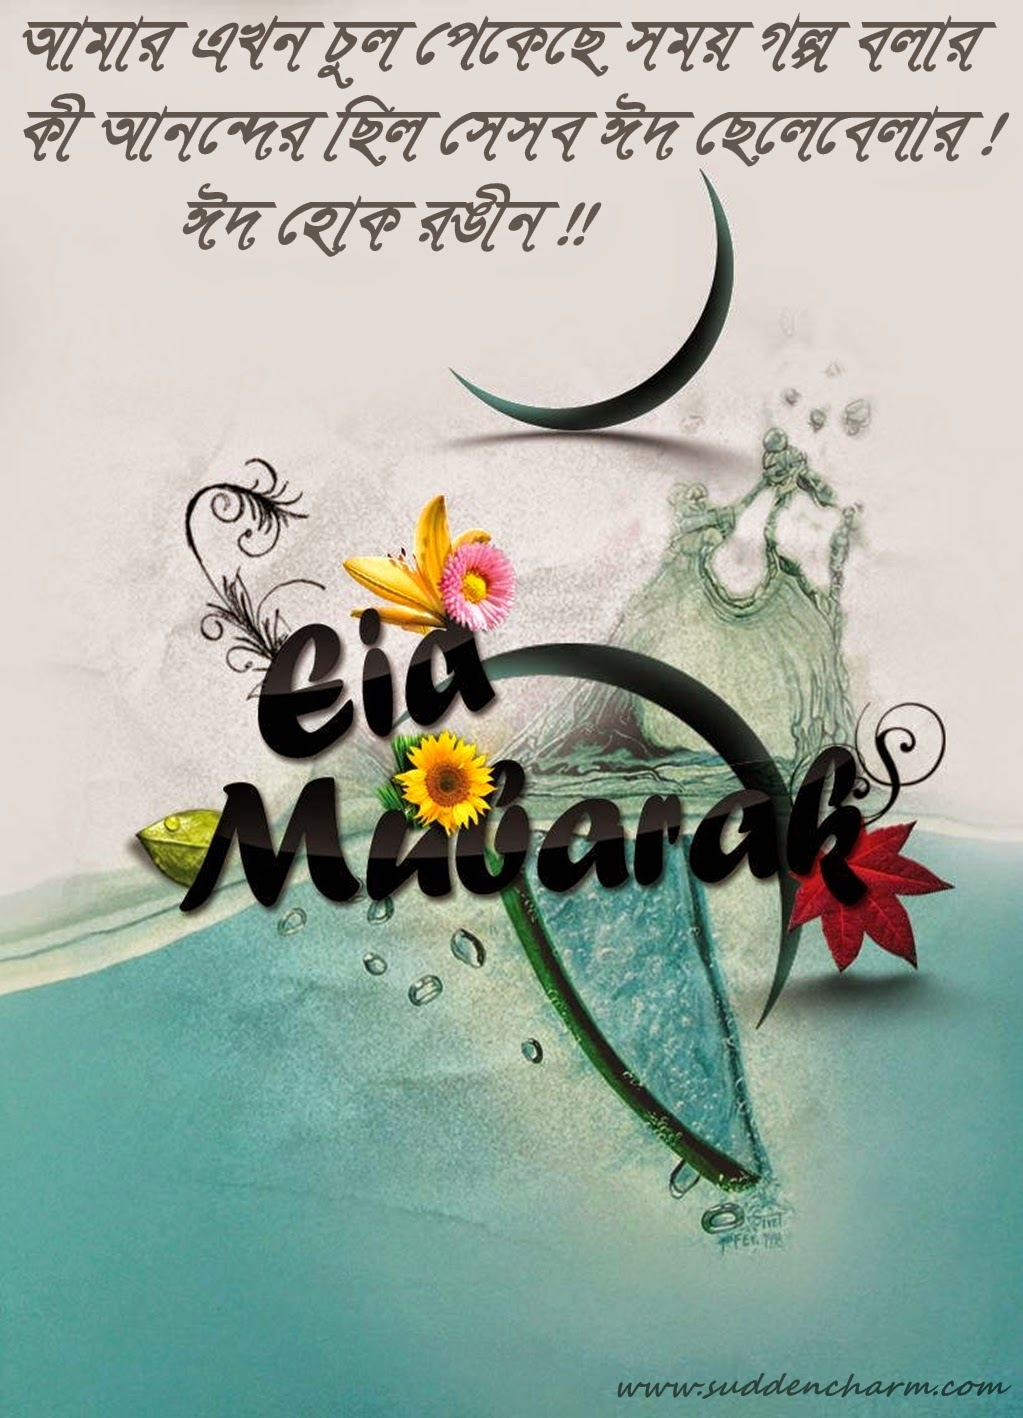 http://suddensms.blogspot.com/search/label/Eid%20Ul%20Adha%20mubarak%202014?max-results=1